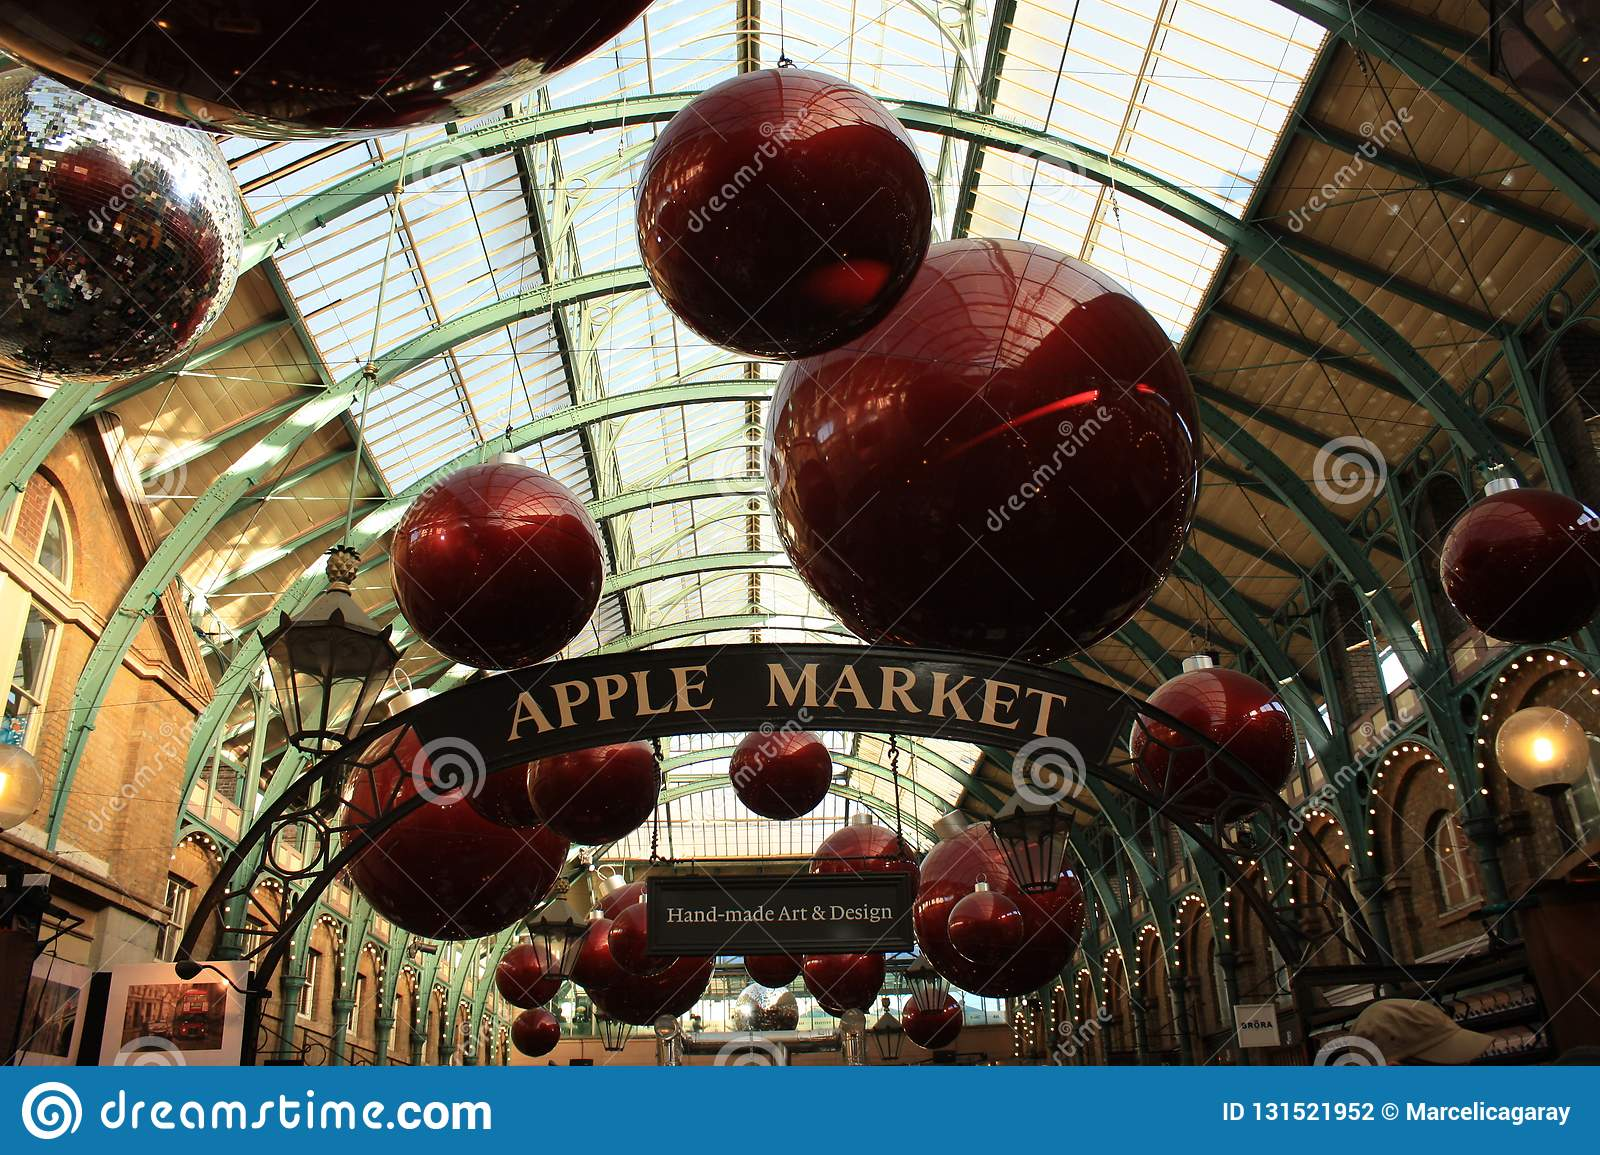 Covent Garden Market at Christmas in London